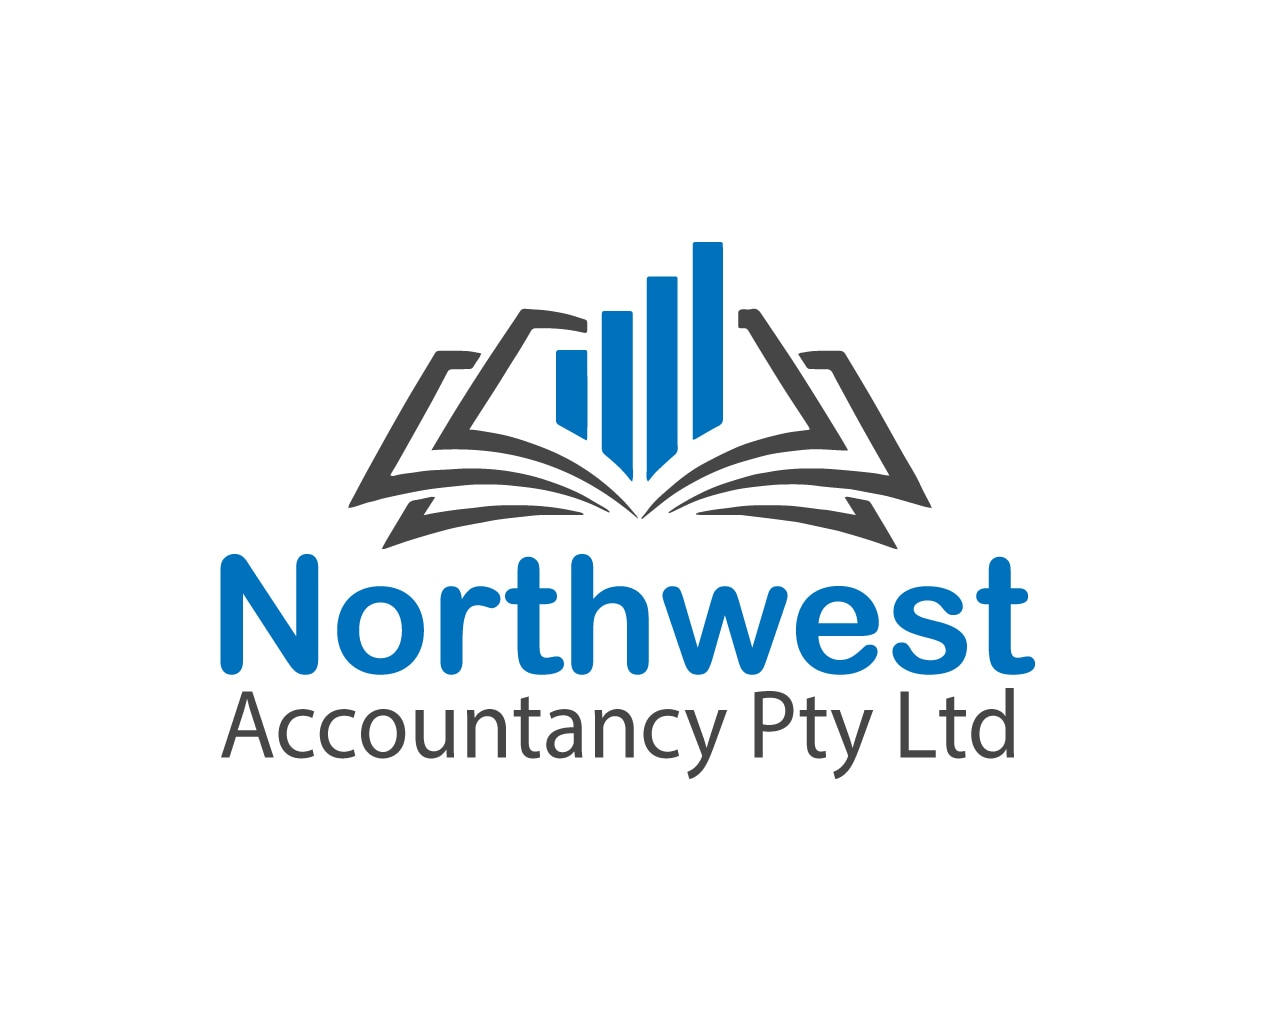 Northwest Accountancy Pty Ltd logo